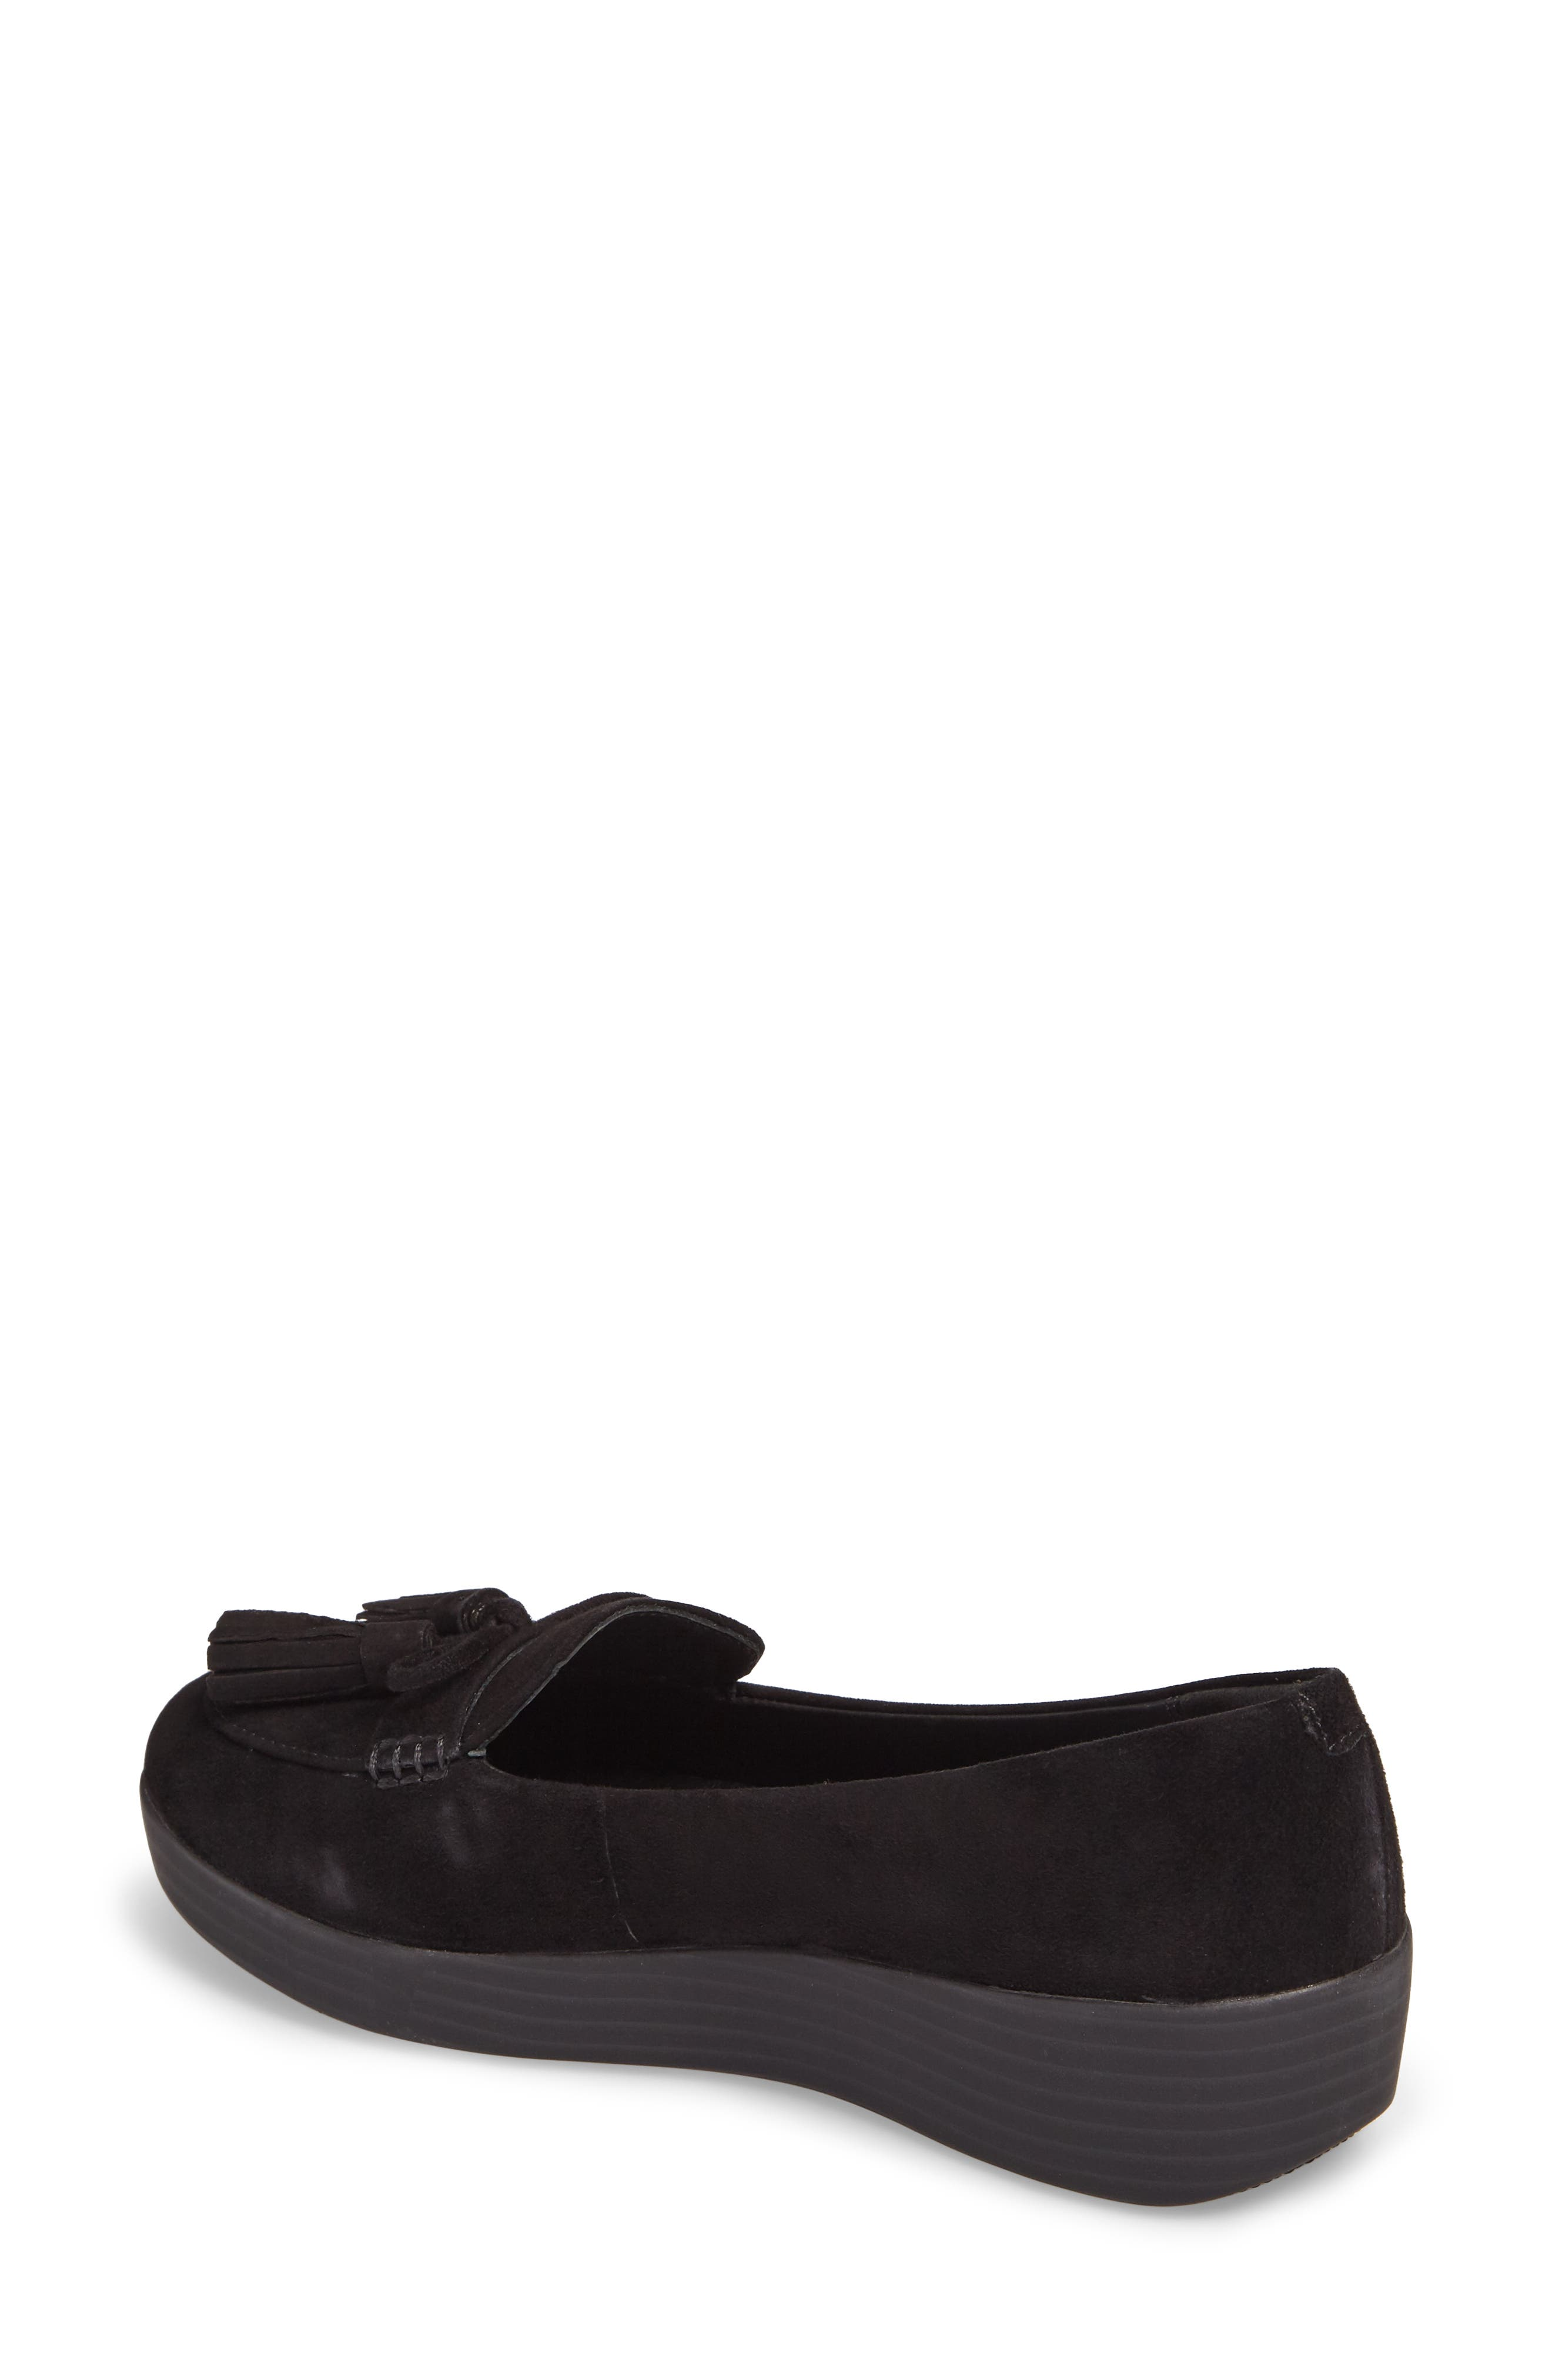 Tassel Bow Sneakerloafer<sup>™</sup> Water Repellent Flat,                             Alternate thumbnail 2, color,                             All Black